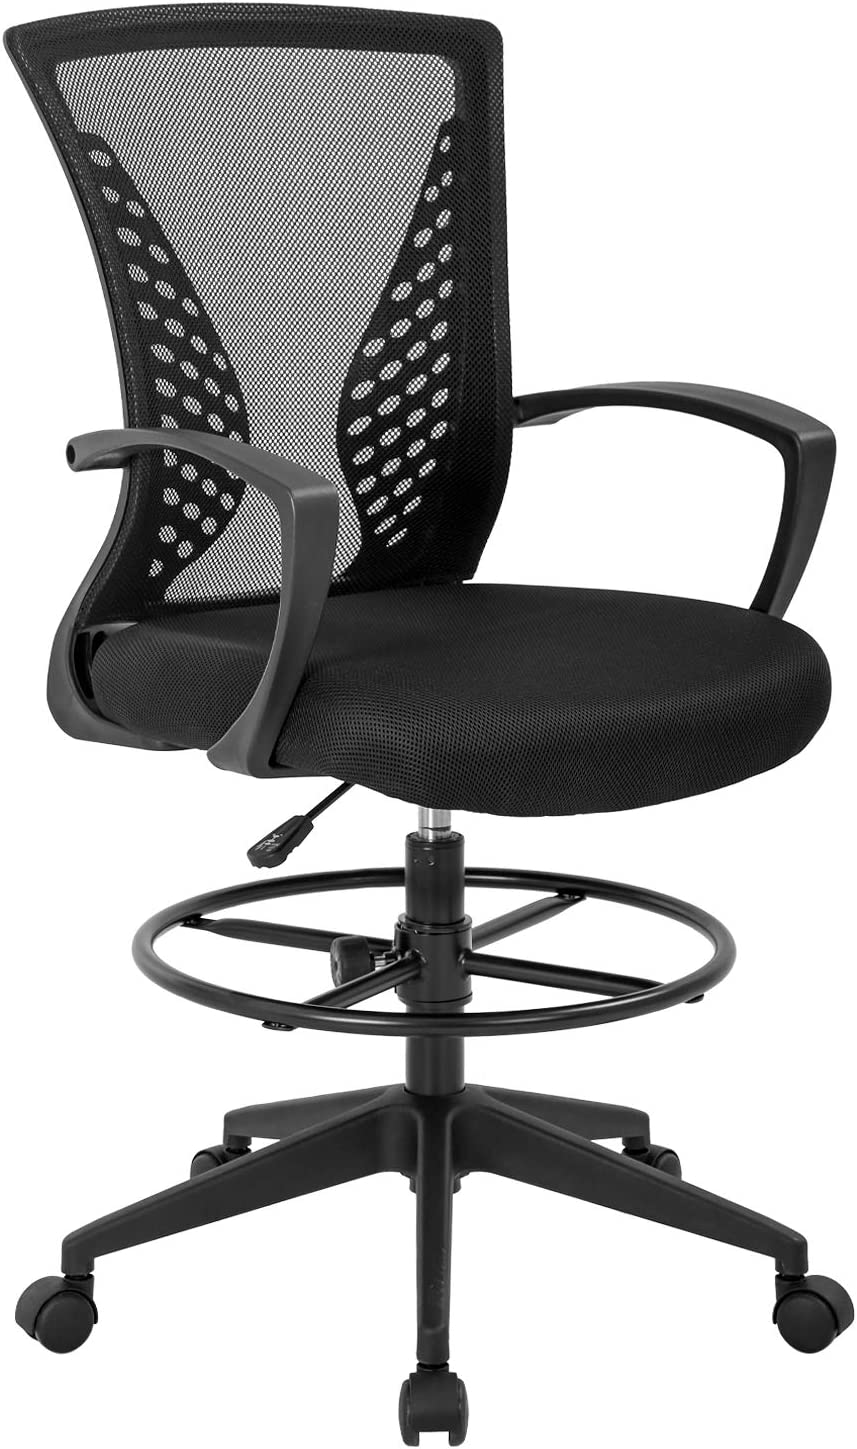 Drafting Chair Tall Ergonomic Office Chair Home Desk Chair Rolling Computer Mesh Swivel Modern Executive Task Chair with Height Adjustable Foot Rest Mid Back Lumbar Support Armrest Black